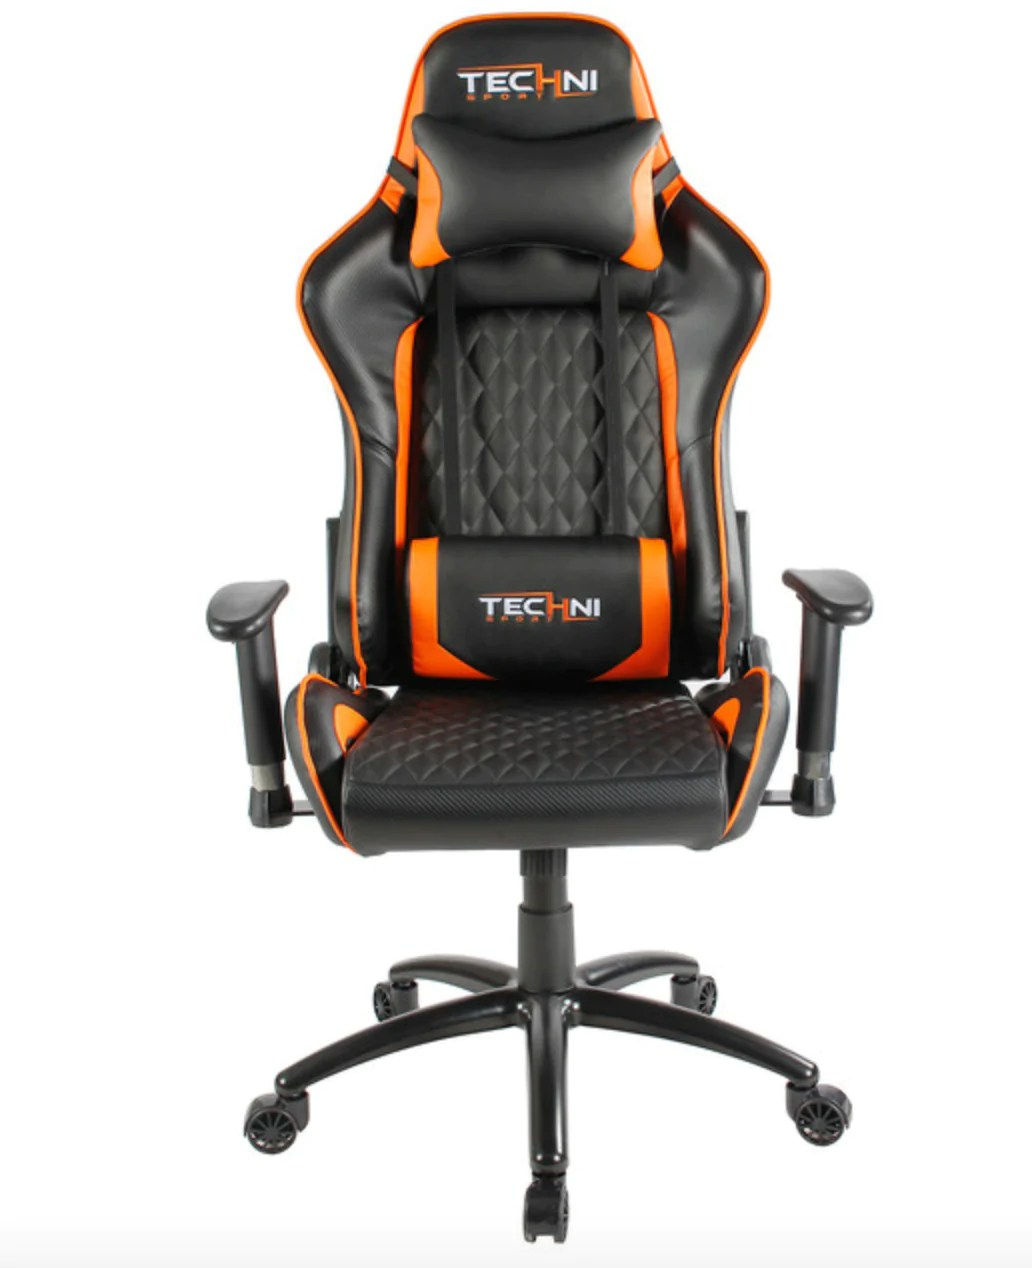 Video Chair Techni Sport Ergonomic High Back Racer Style Video Gaming Chair